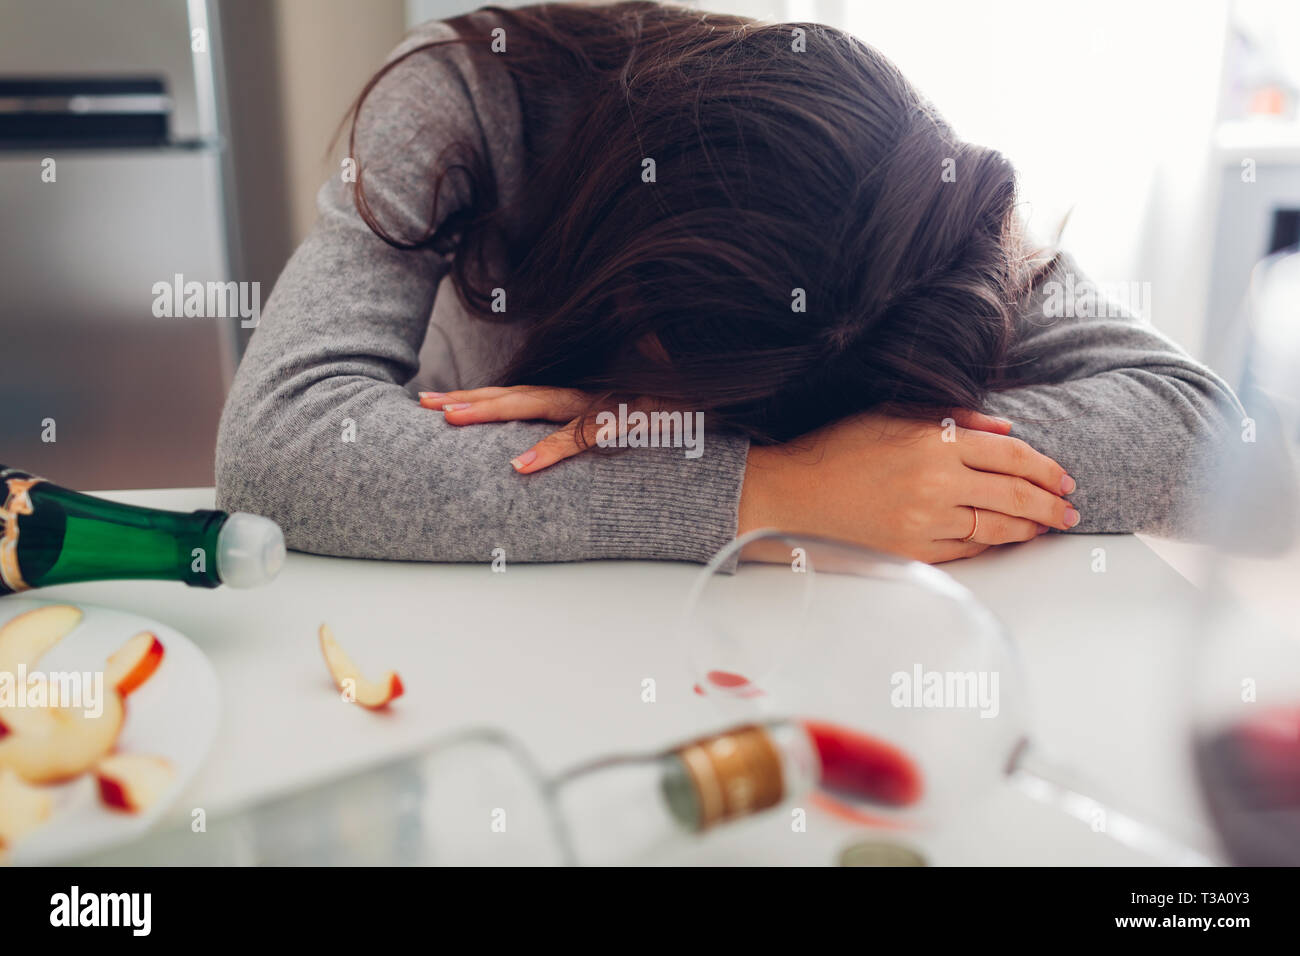 Female alcohol addiction. Young woman sleeping on kitchen table surrounded with wine bottles. Alcoholism Stock Photo